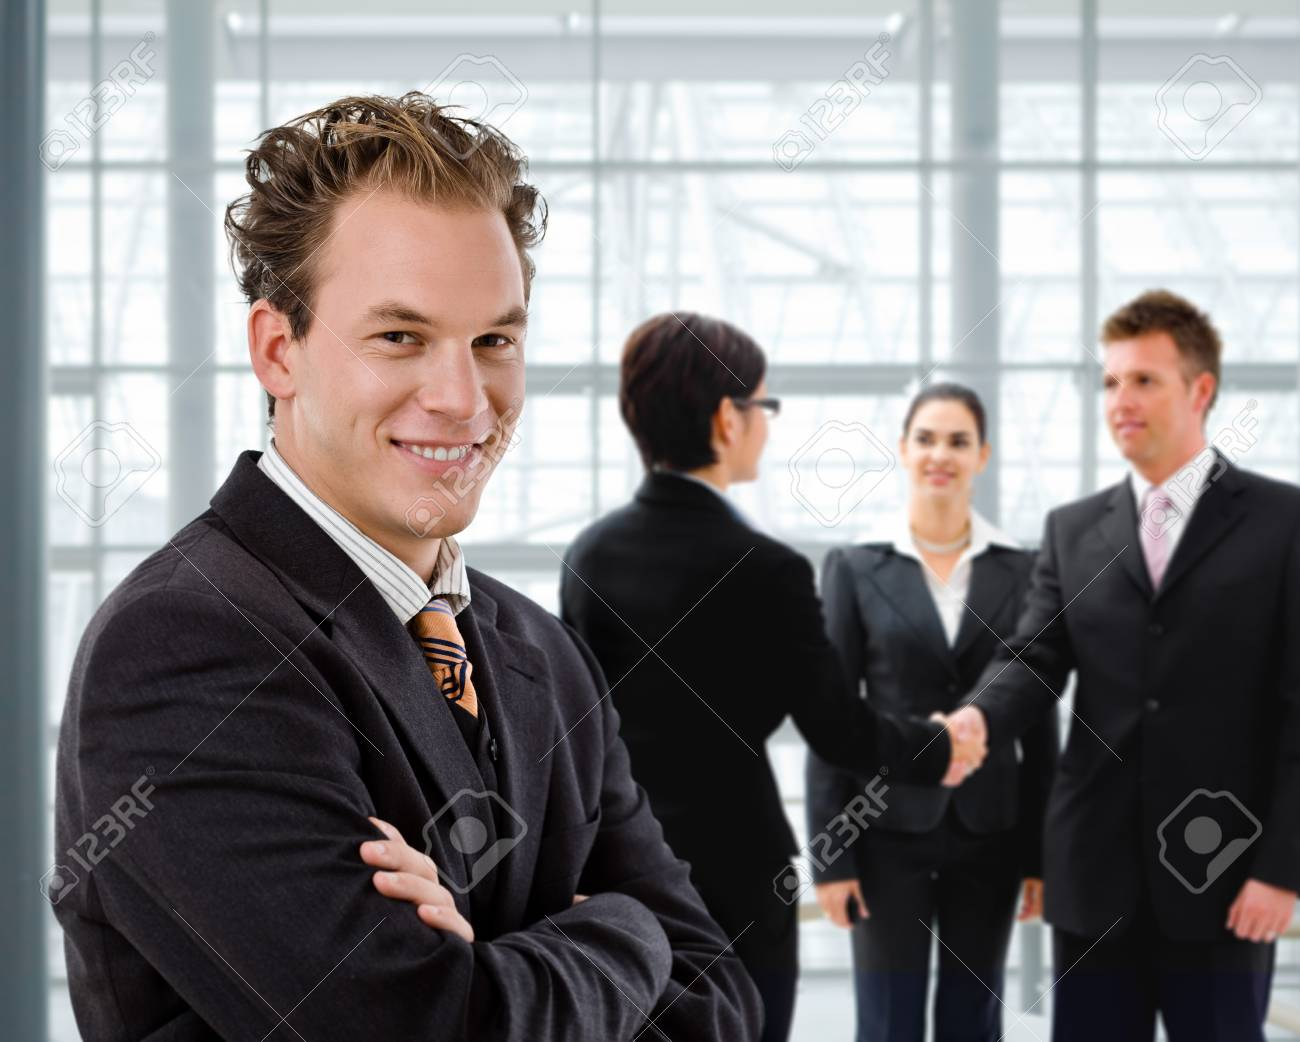 Team of business people, businessman in front, handsake in background. Stock Photo - 4209137